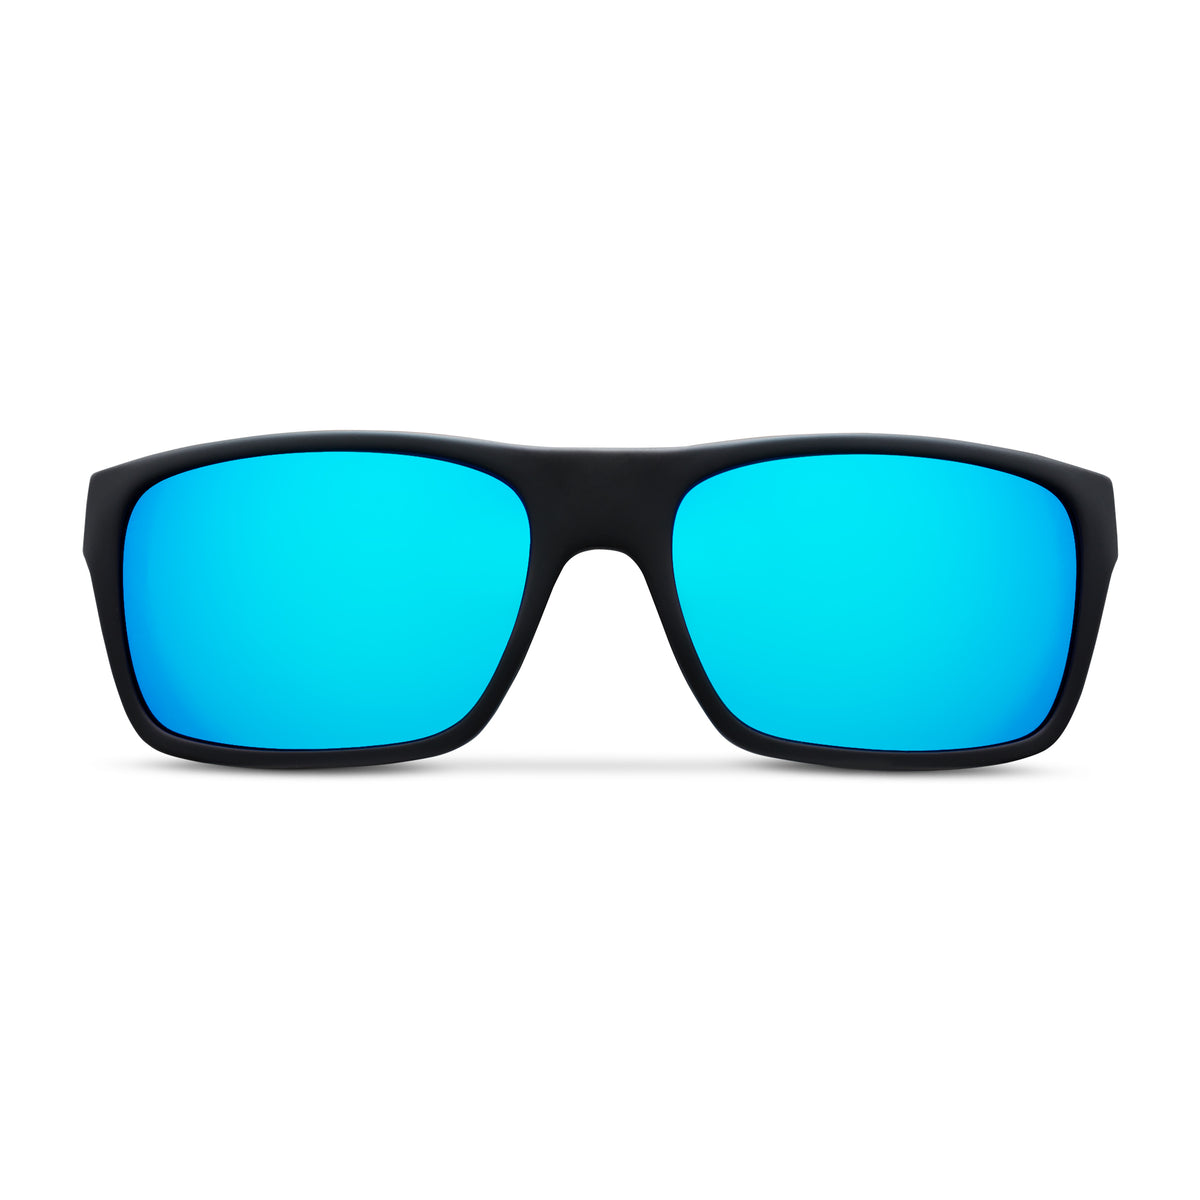 Fish Taco - Polarized Polycarbonate Lens Big Image - 2